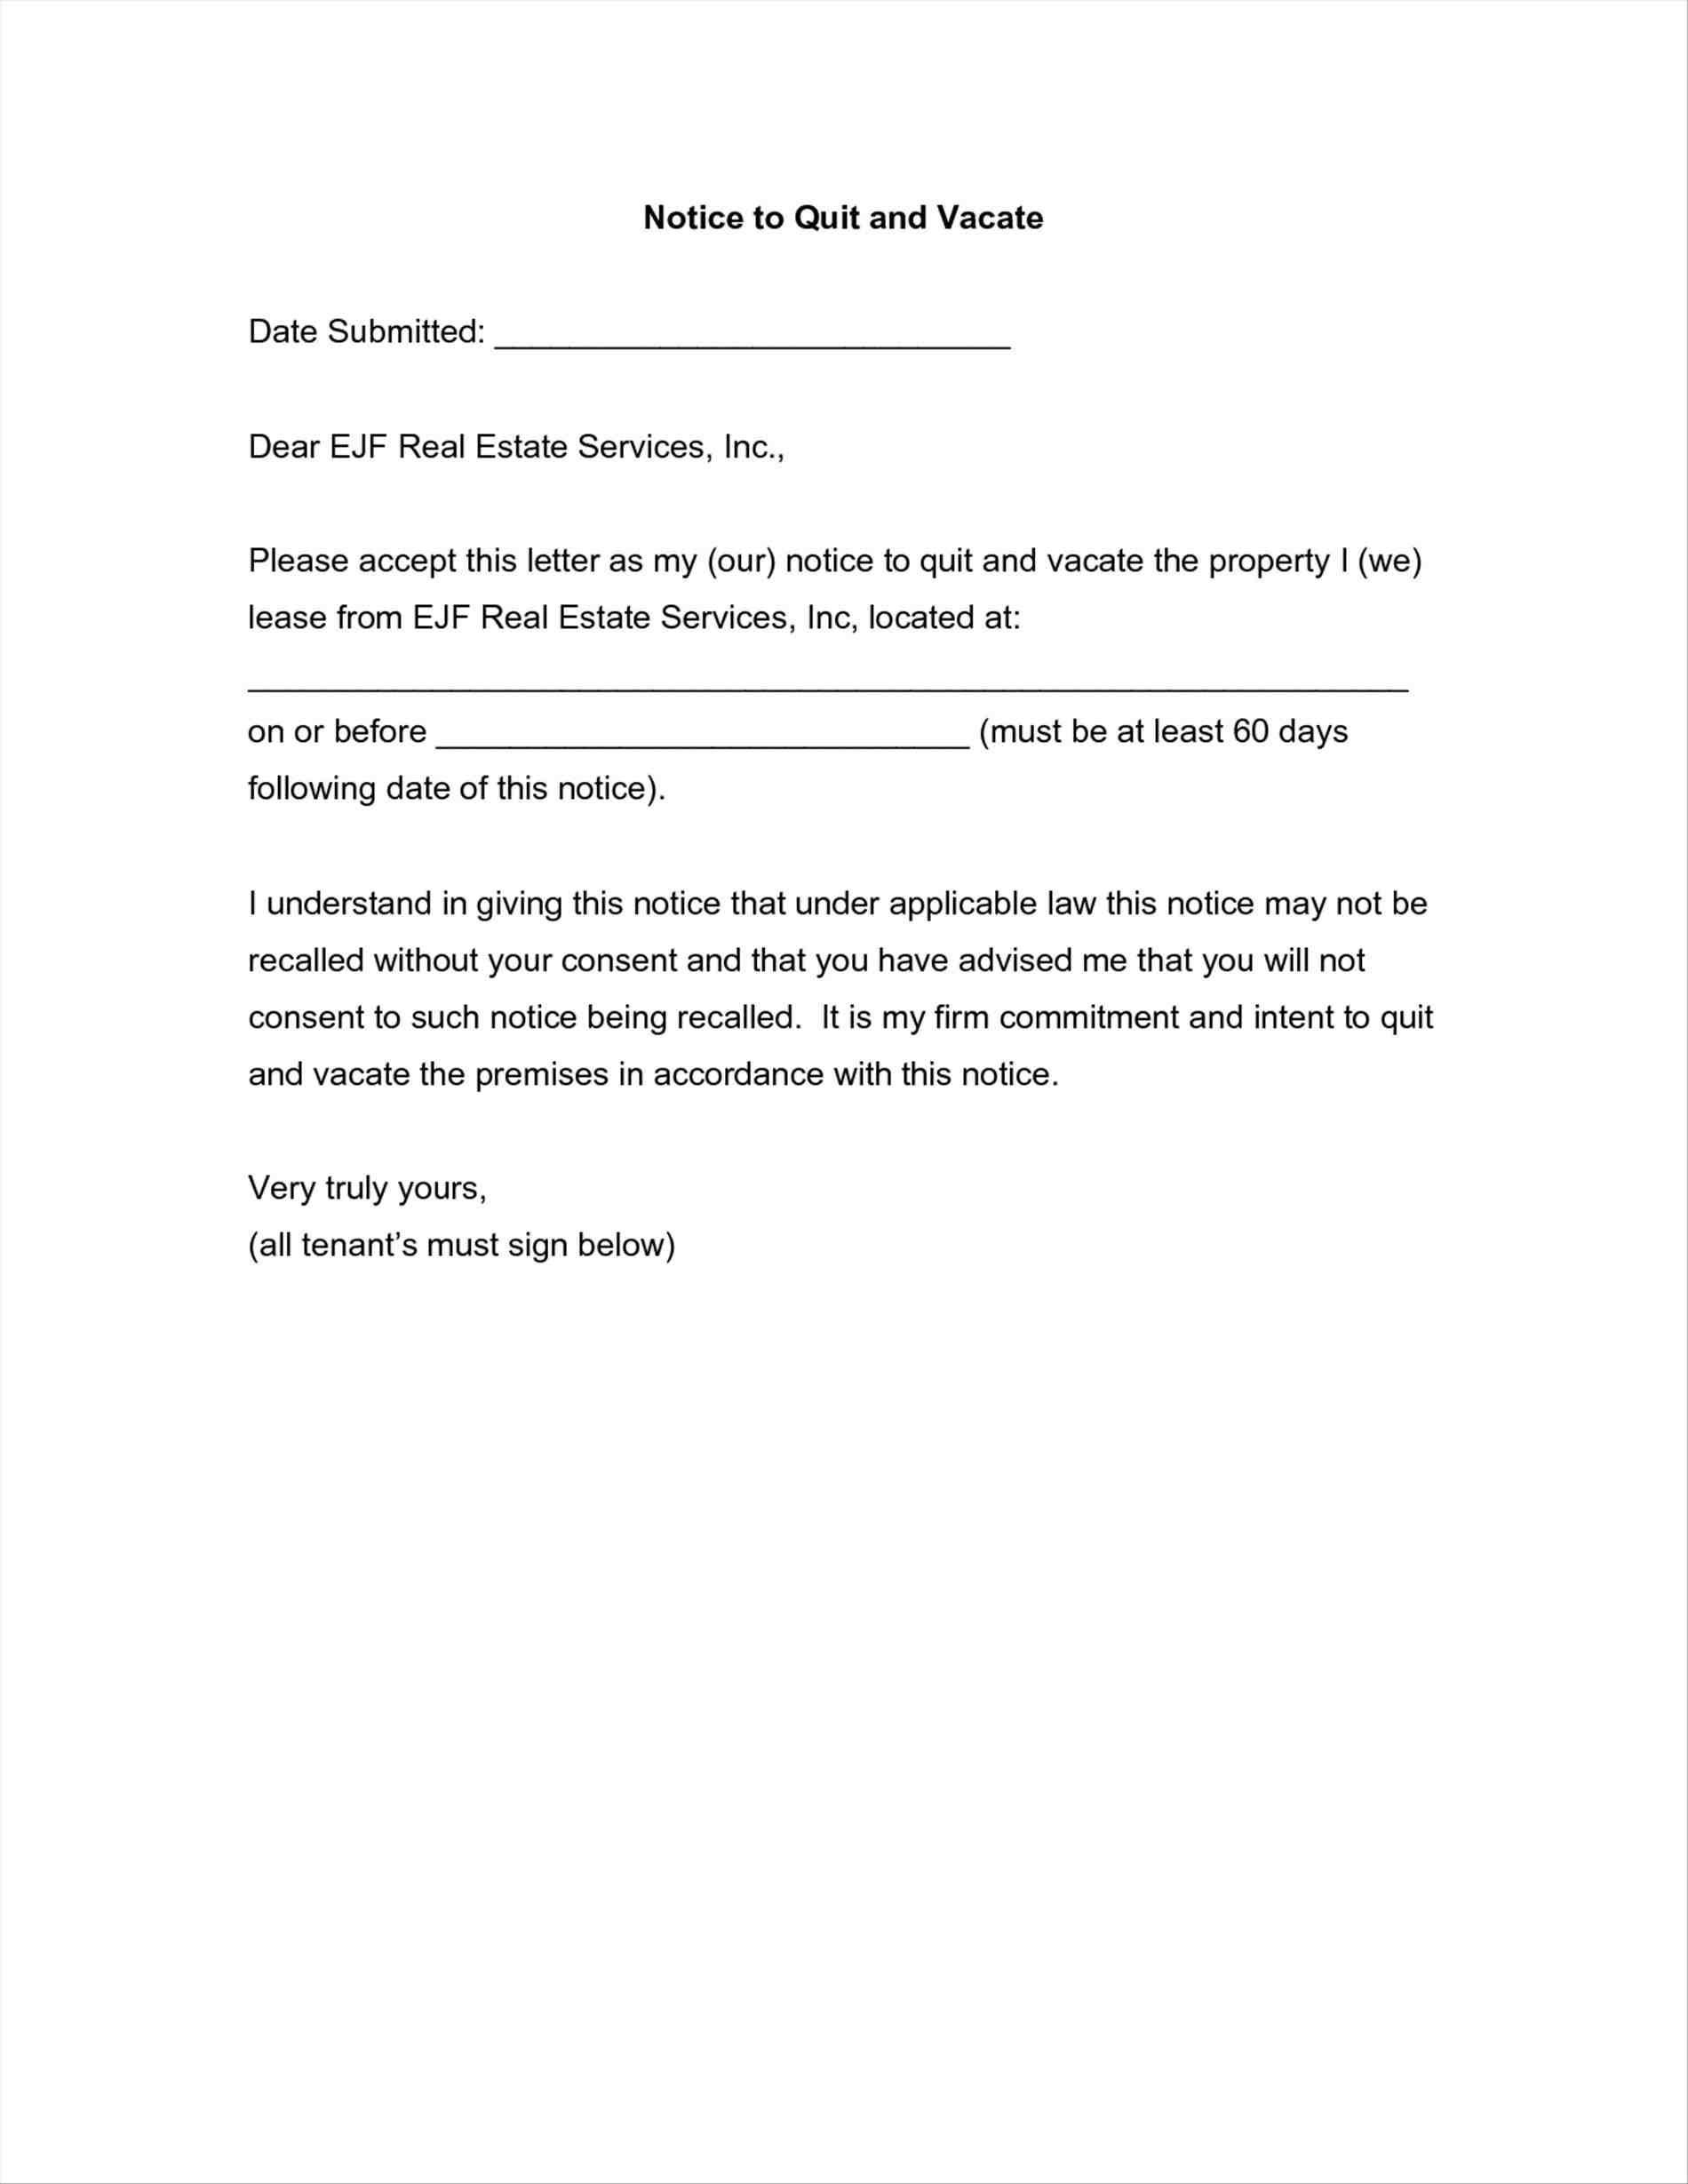 Tenant Warning Letter Template - Giving Notice to Landlord Template